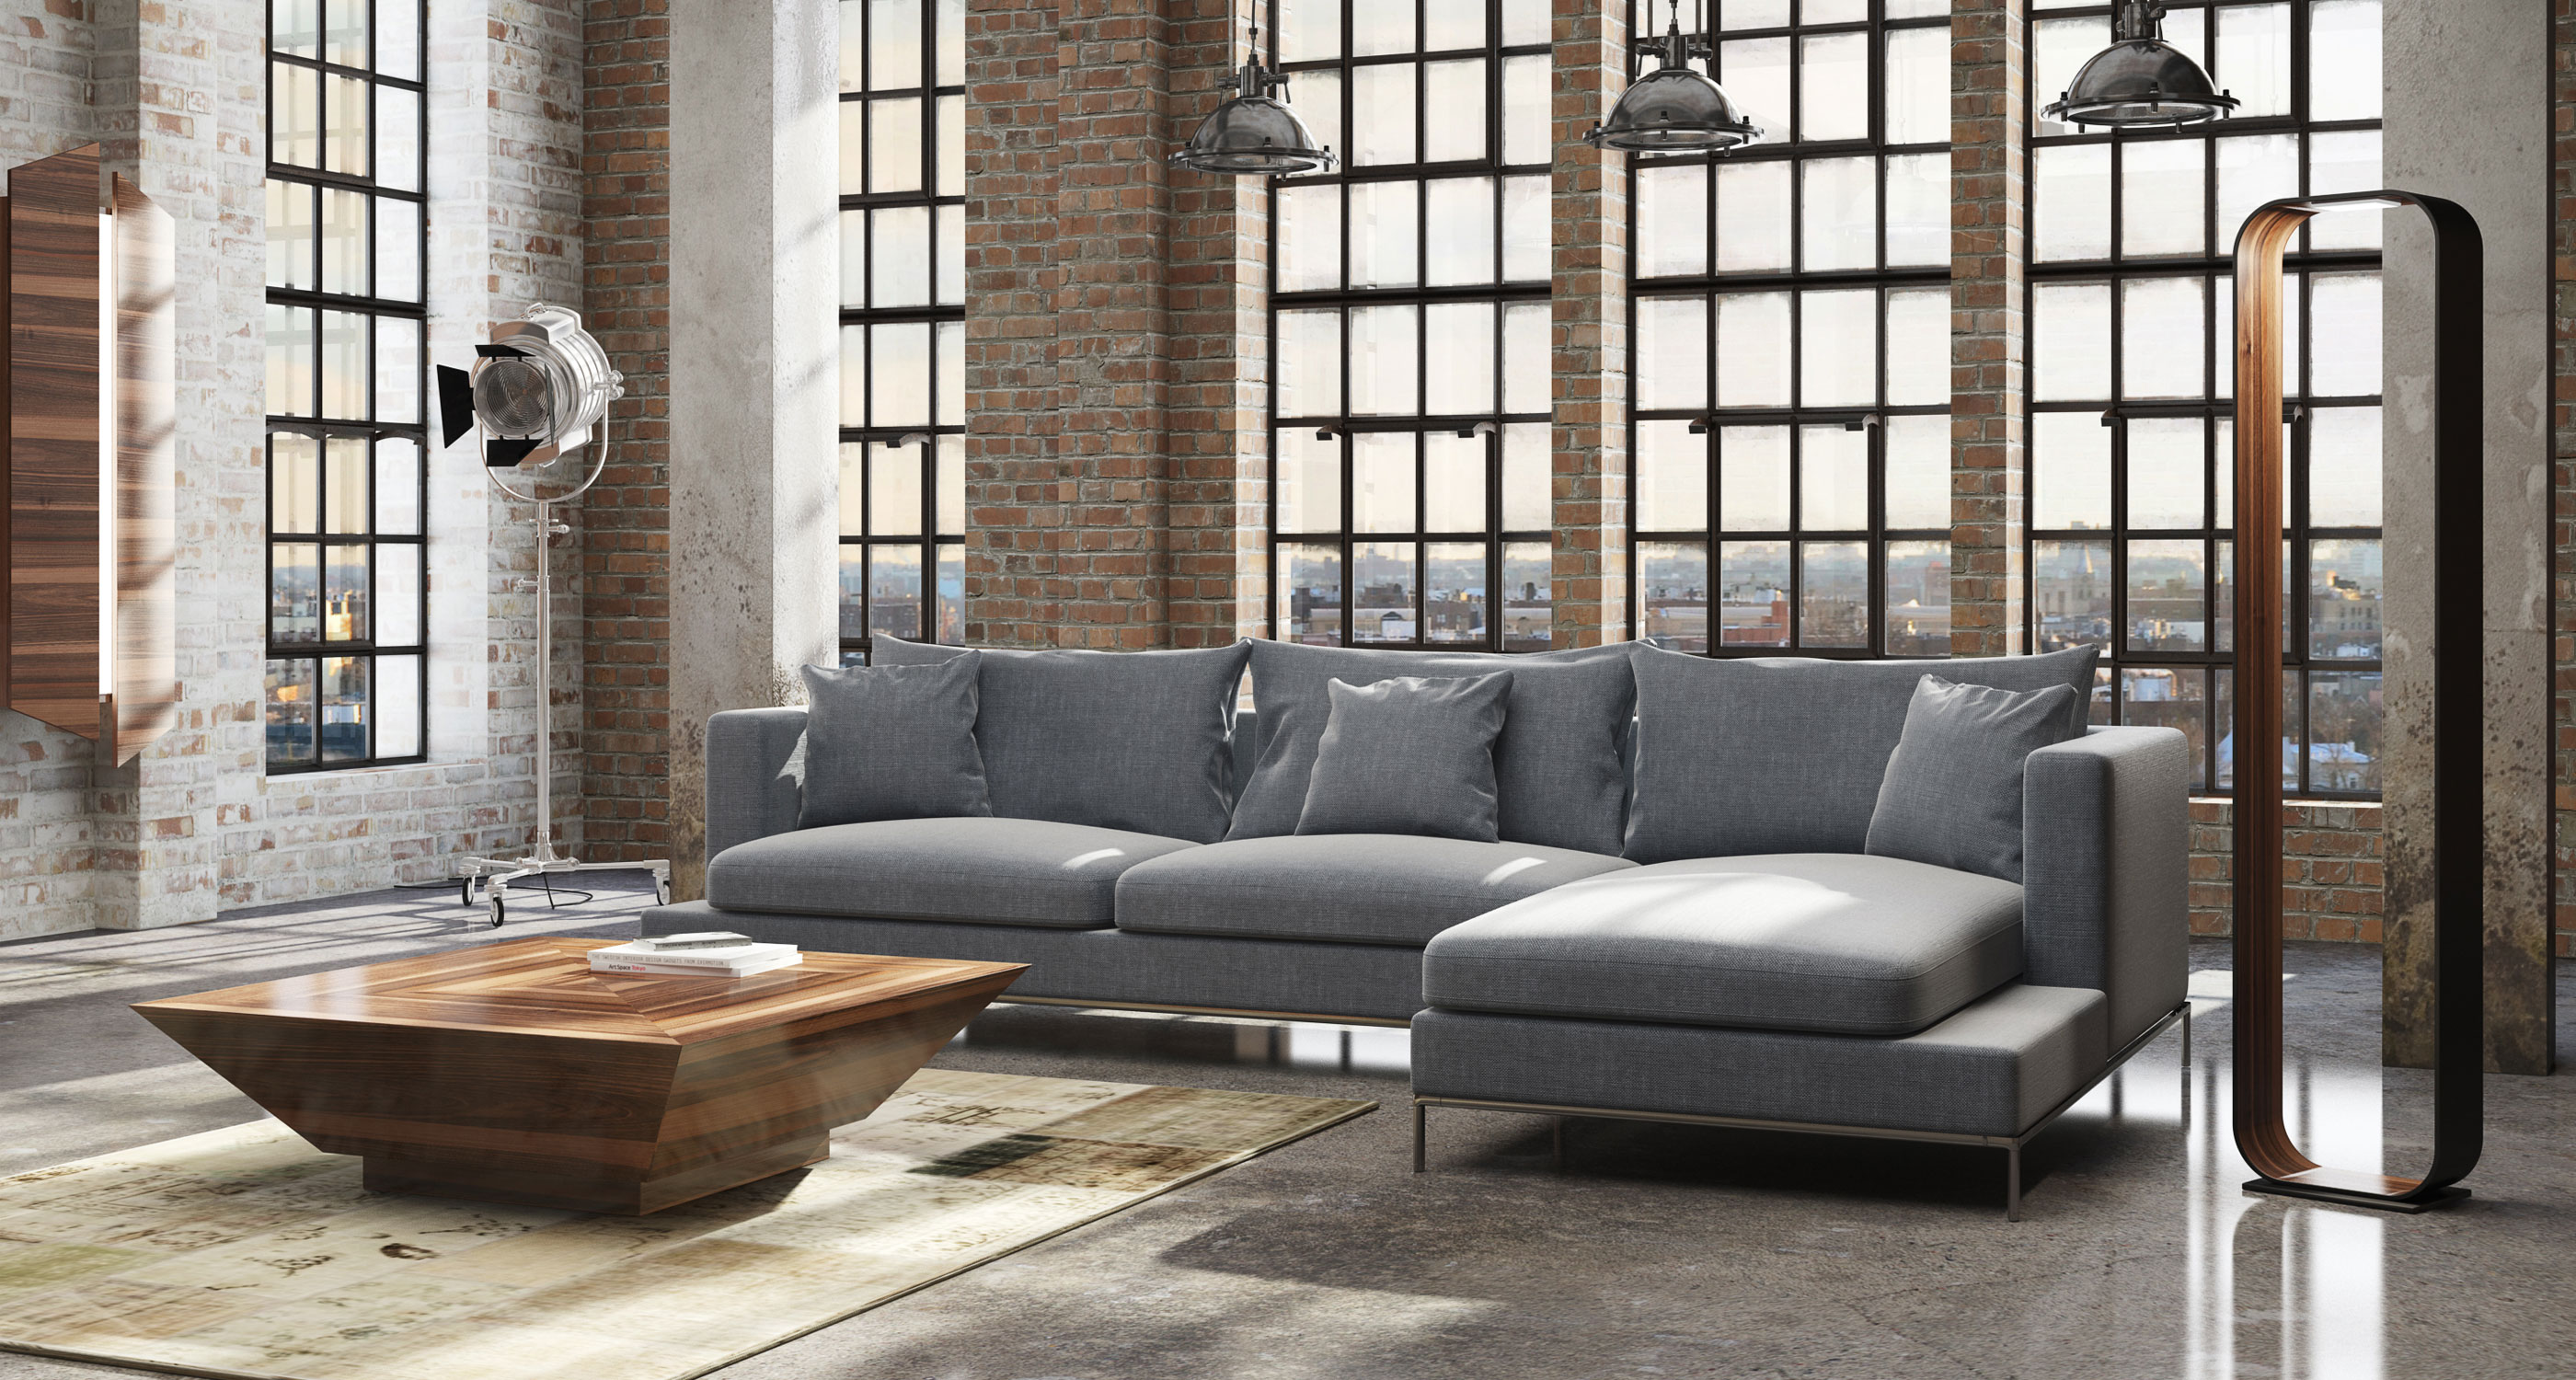 Sofa Bed With Metal Frame Simena | Contemporary Sectional Sofas | Sohoconcept